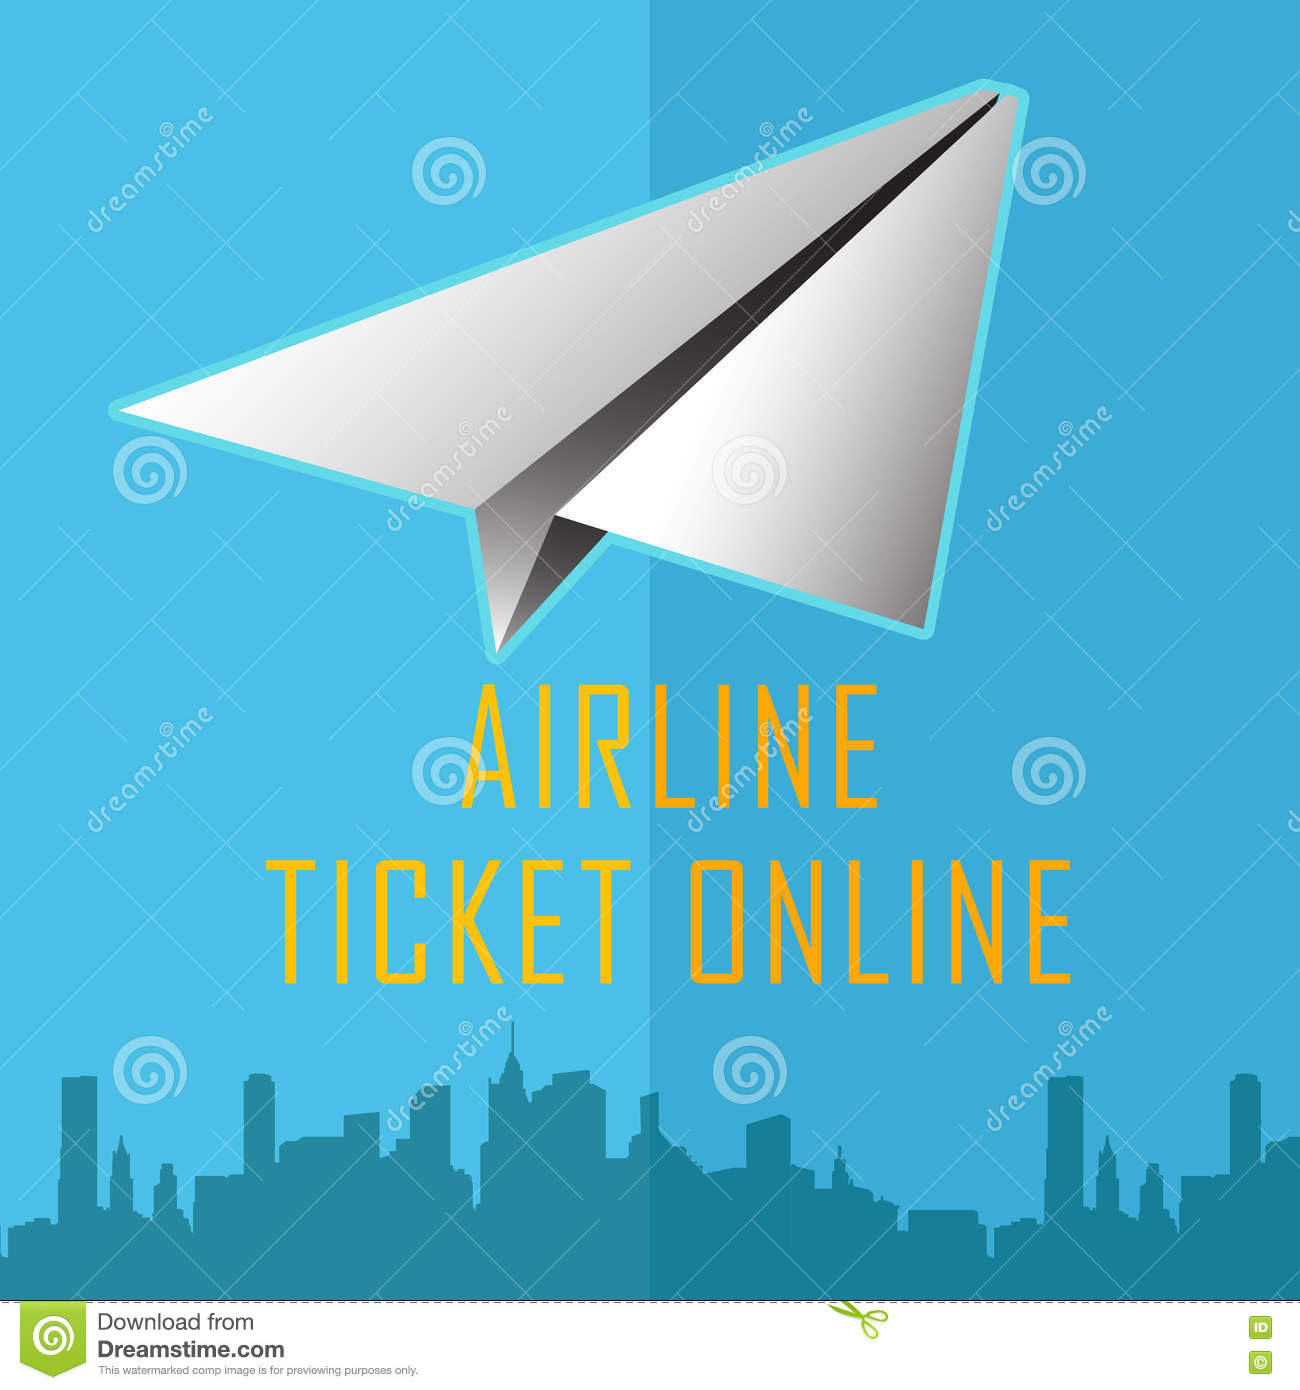 Vector Design Template With Plane Online Design Eliments For Online Booking Flights Tickets